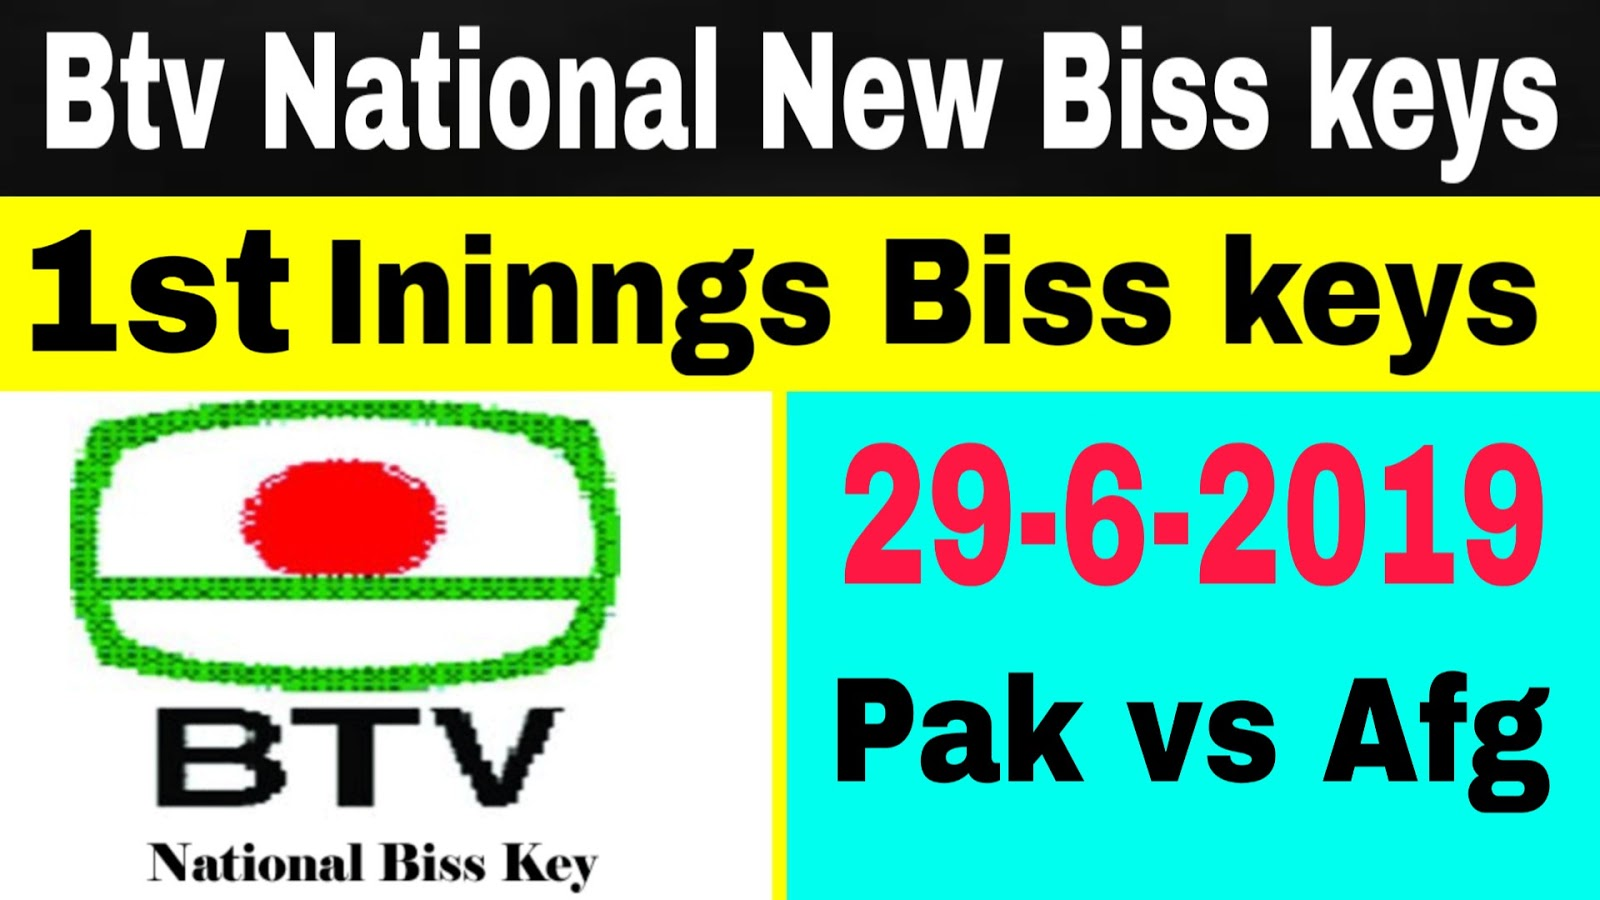 Btv National New Working biss keys 29 jun 2019 02:00pm 1ST ininngs